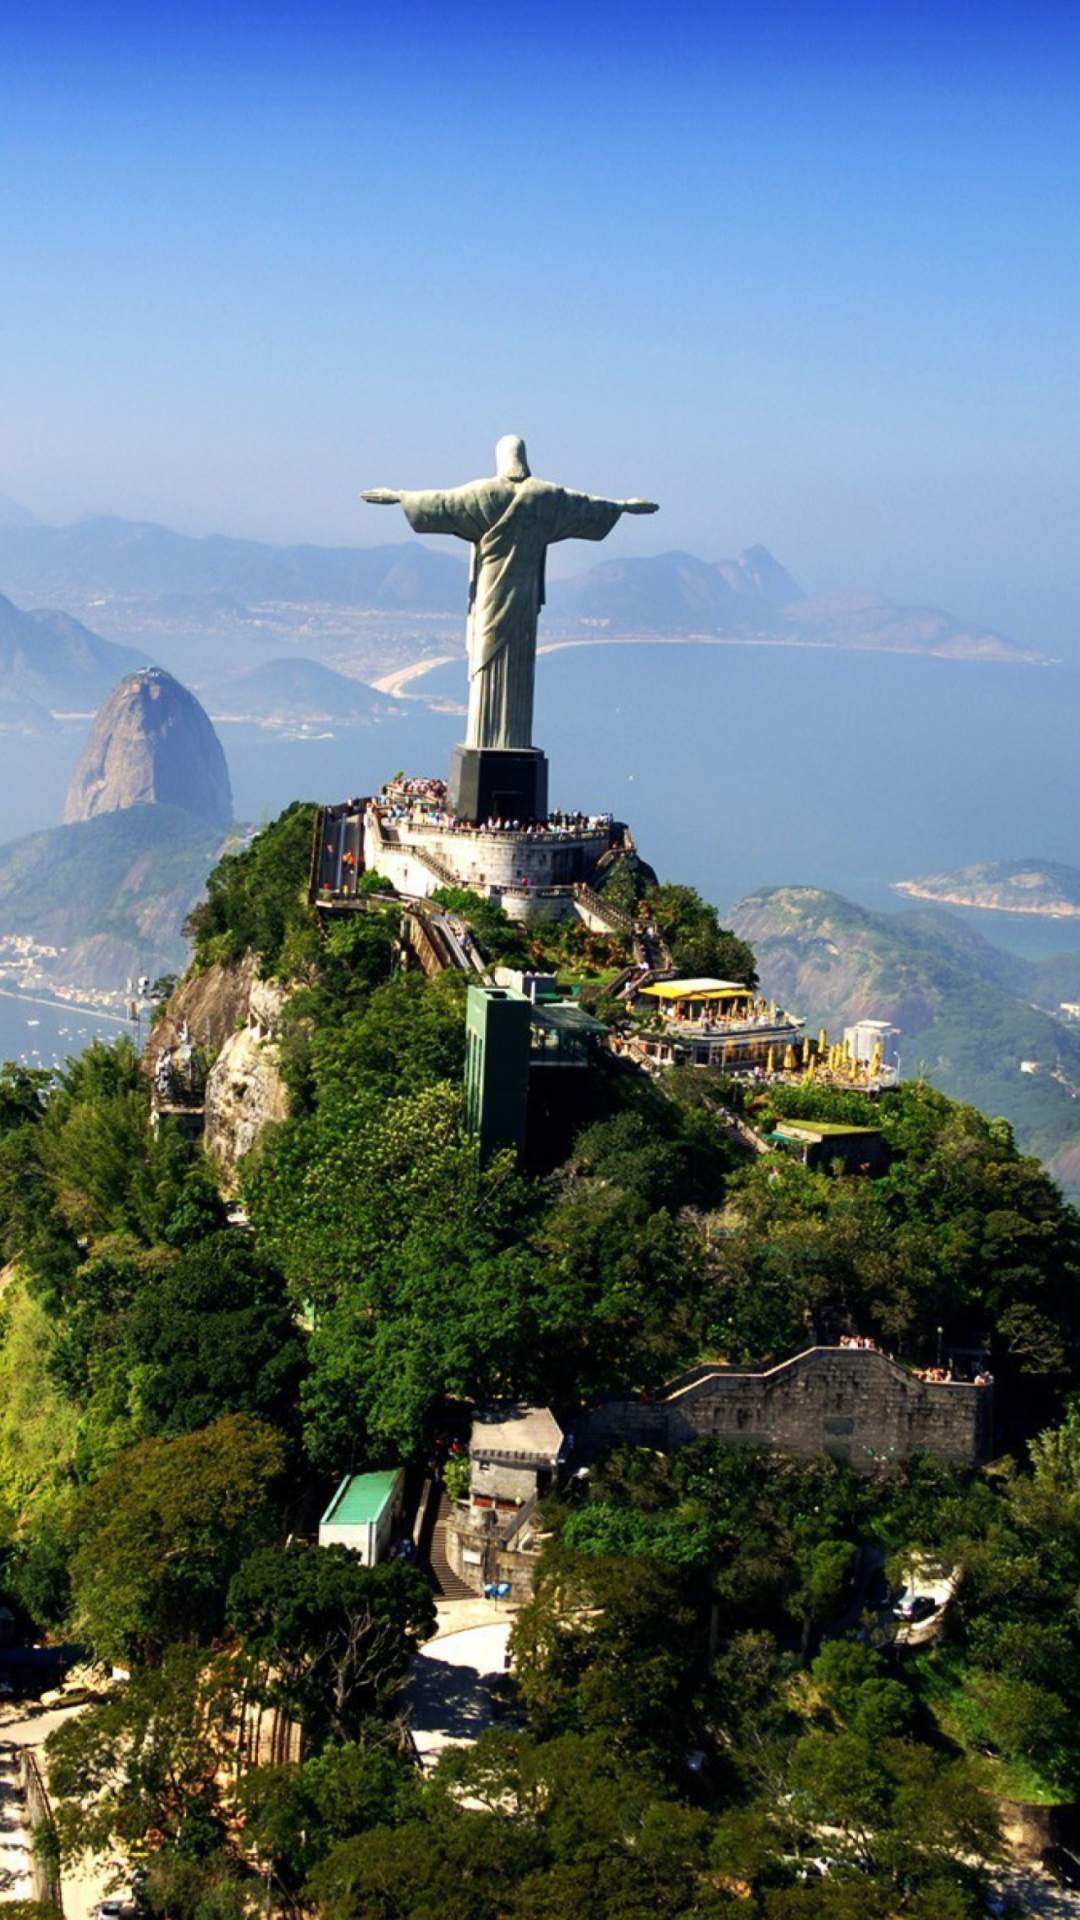 Aerial view of Statue of Christ the Redeemer (Cristo